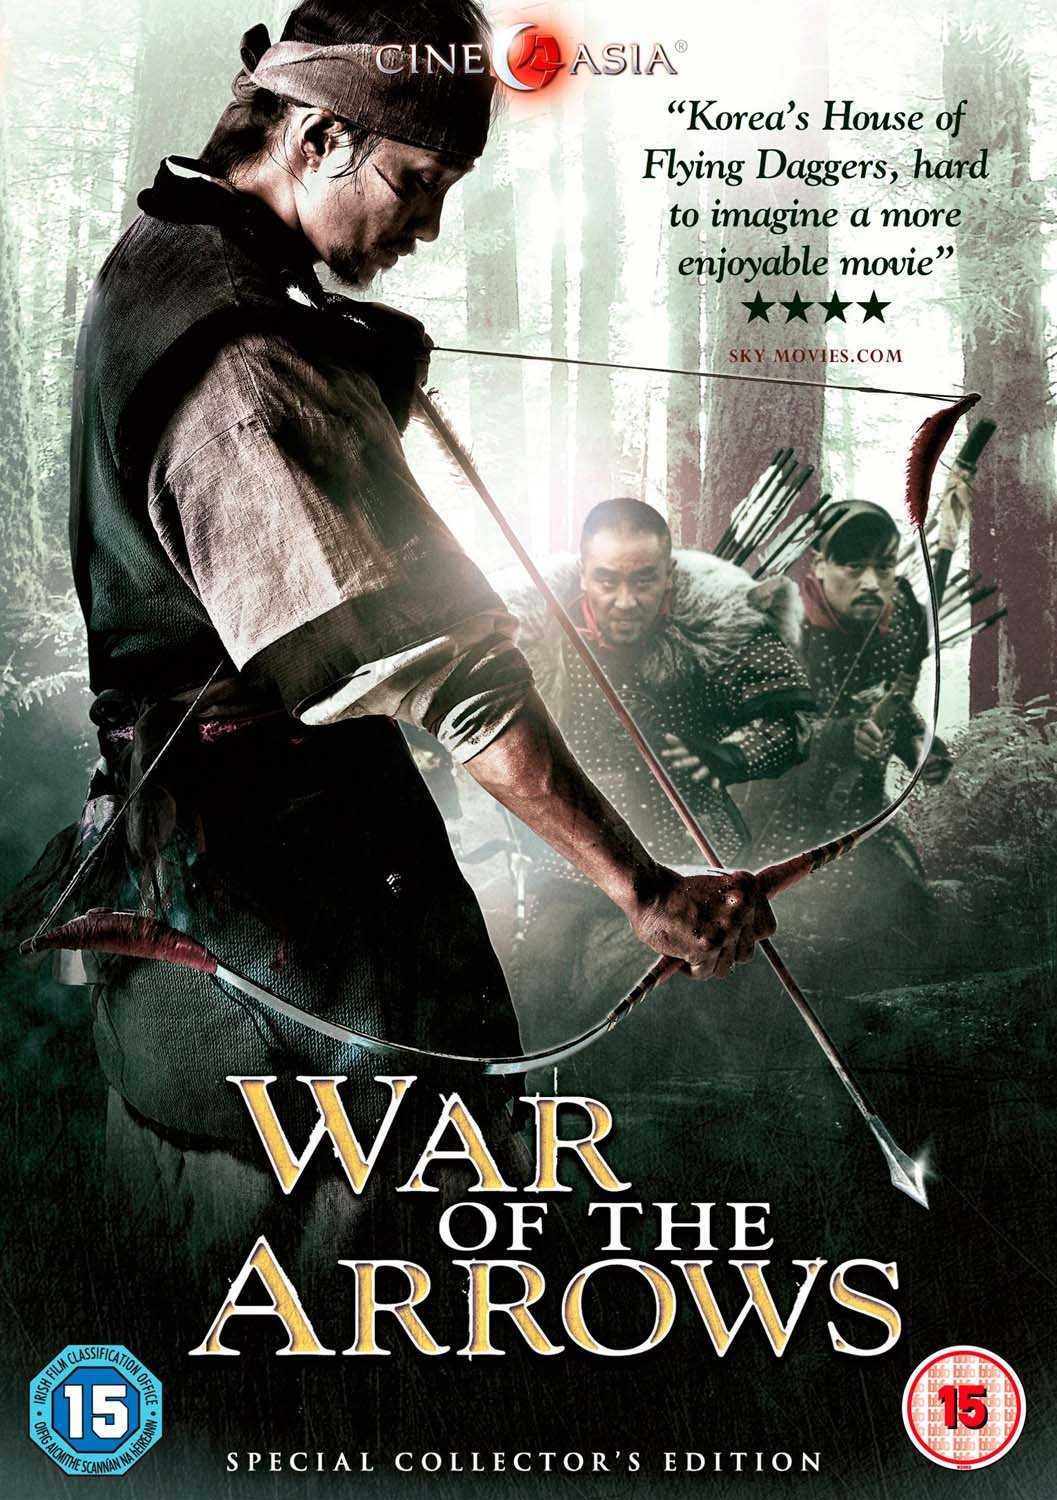 War of the Arrows 2011 Hindi Dual Audio 480p| 720p BluRay x264 AAC  435MB |1GB Download